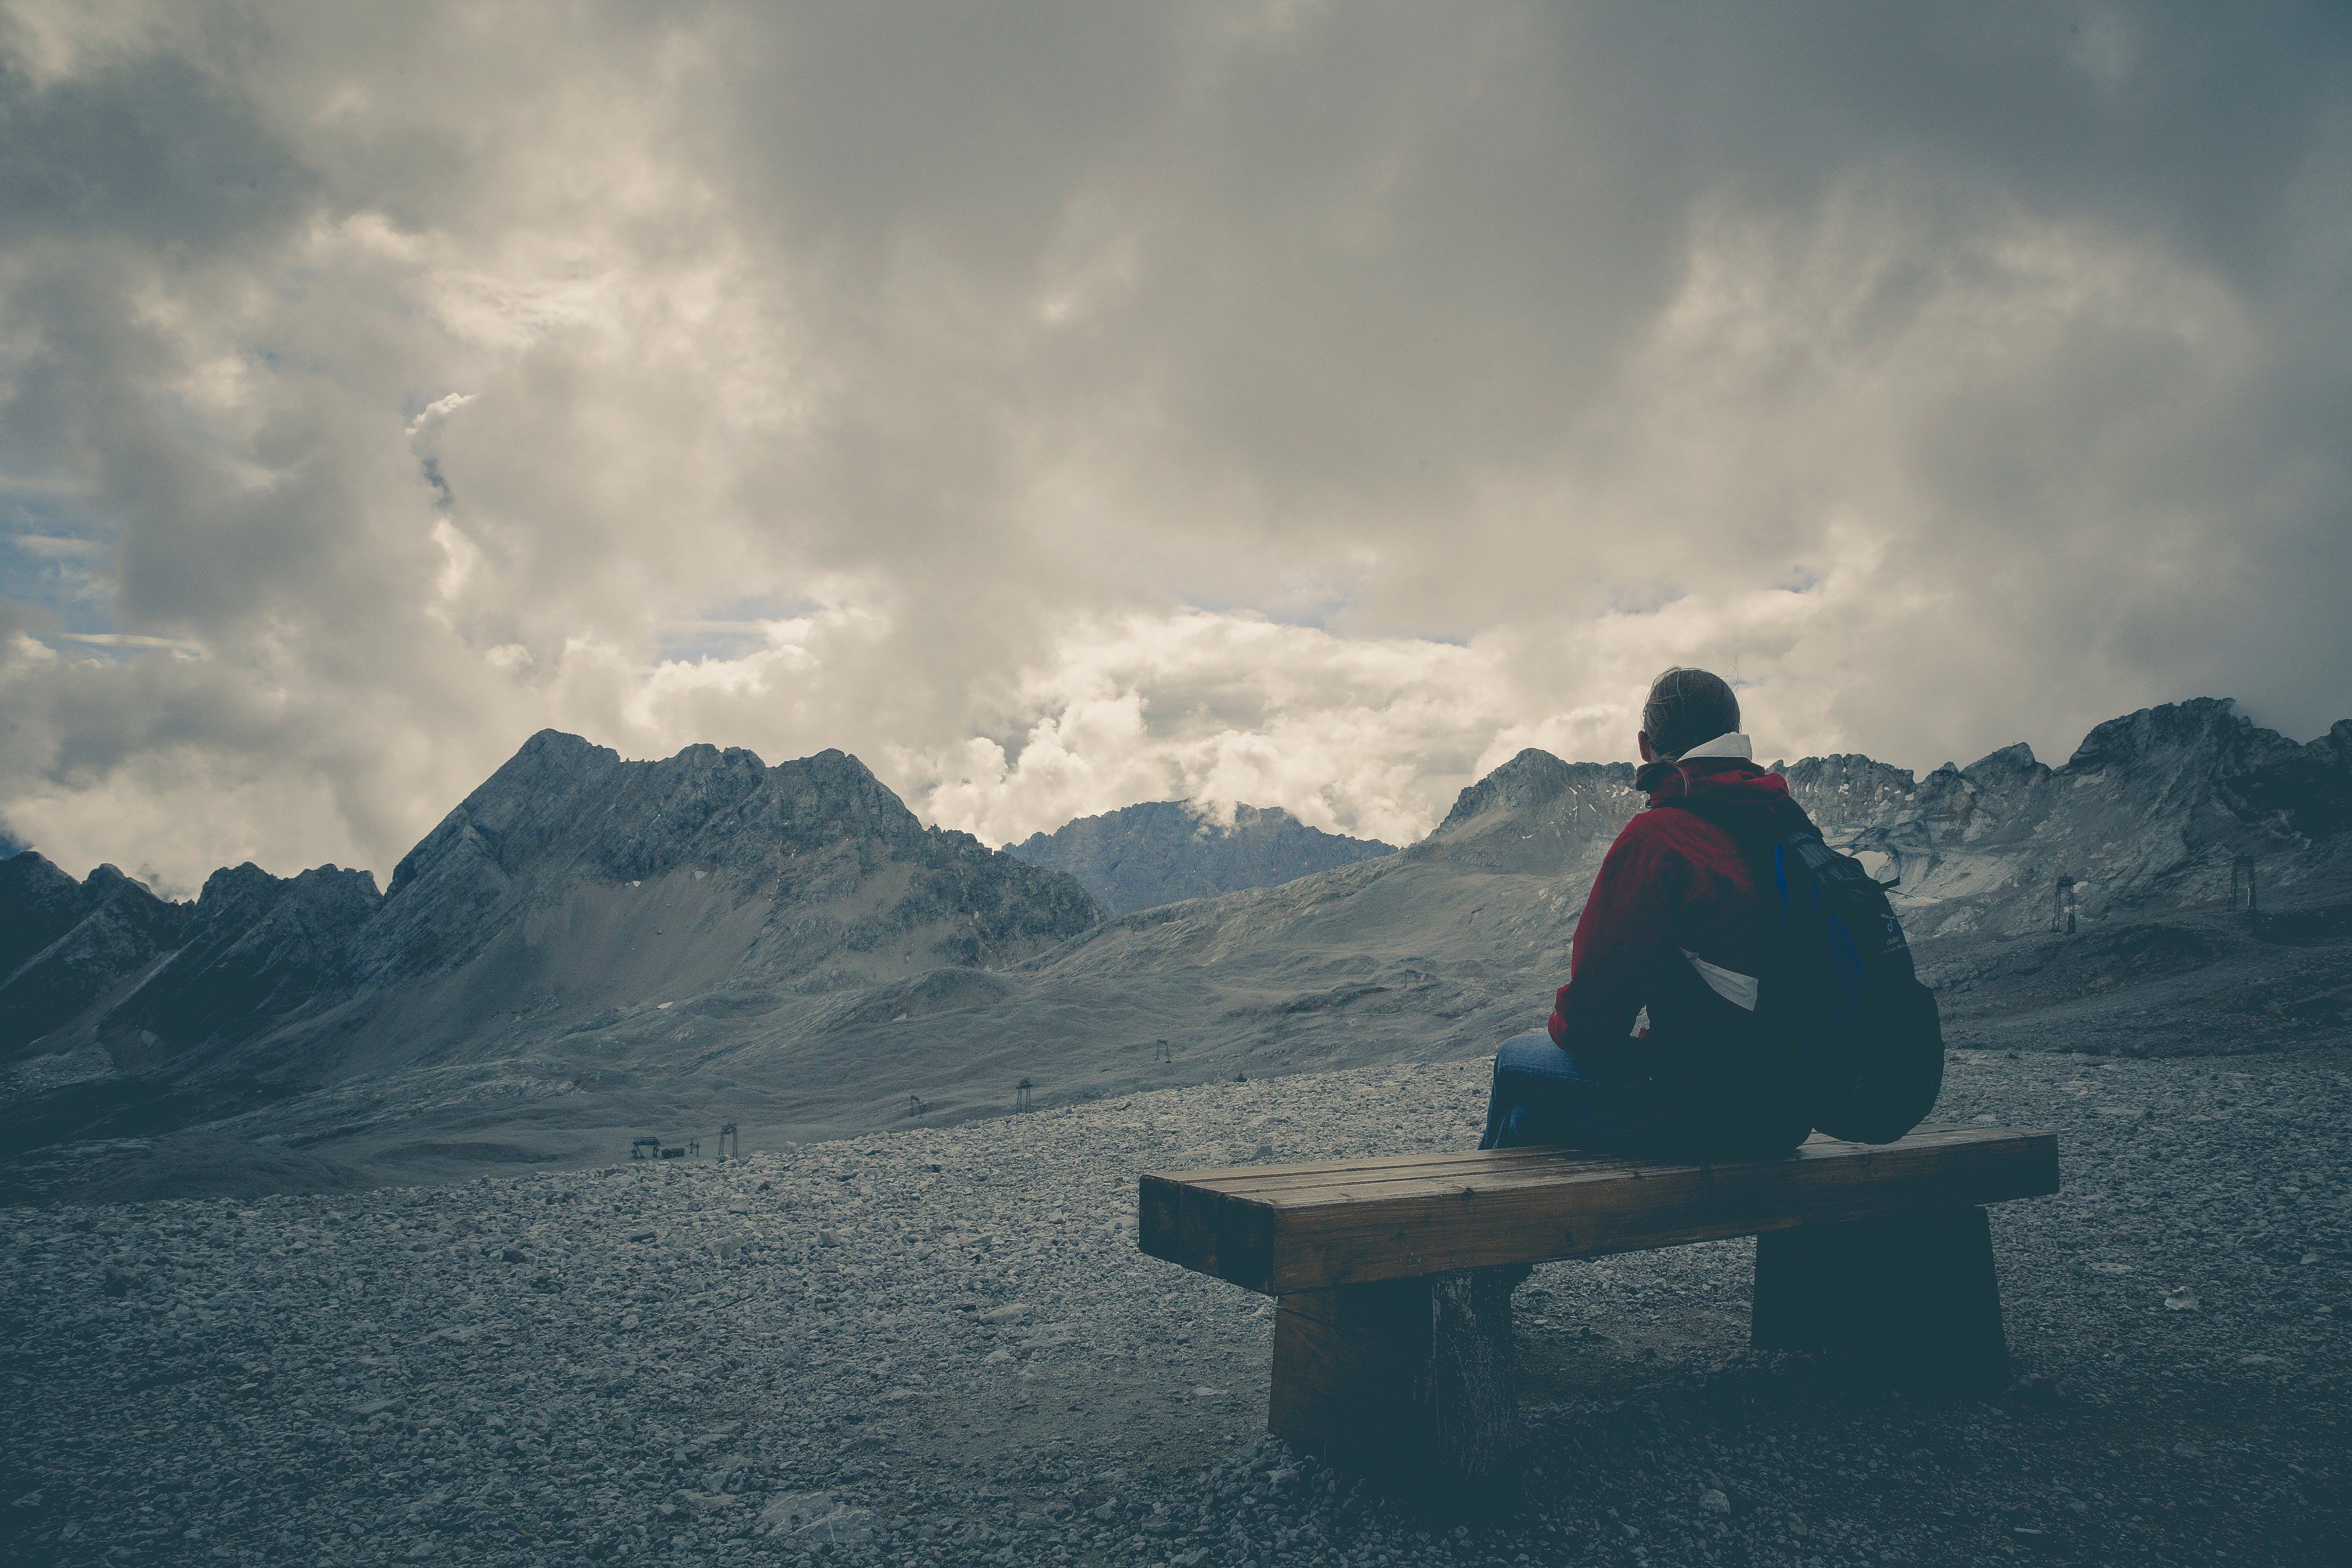 Man in Red Jacket Sitting on Brown Wooden Bench